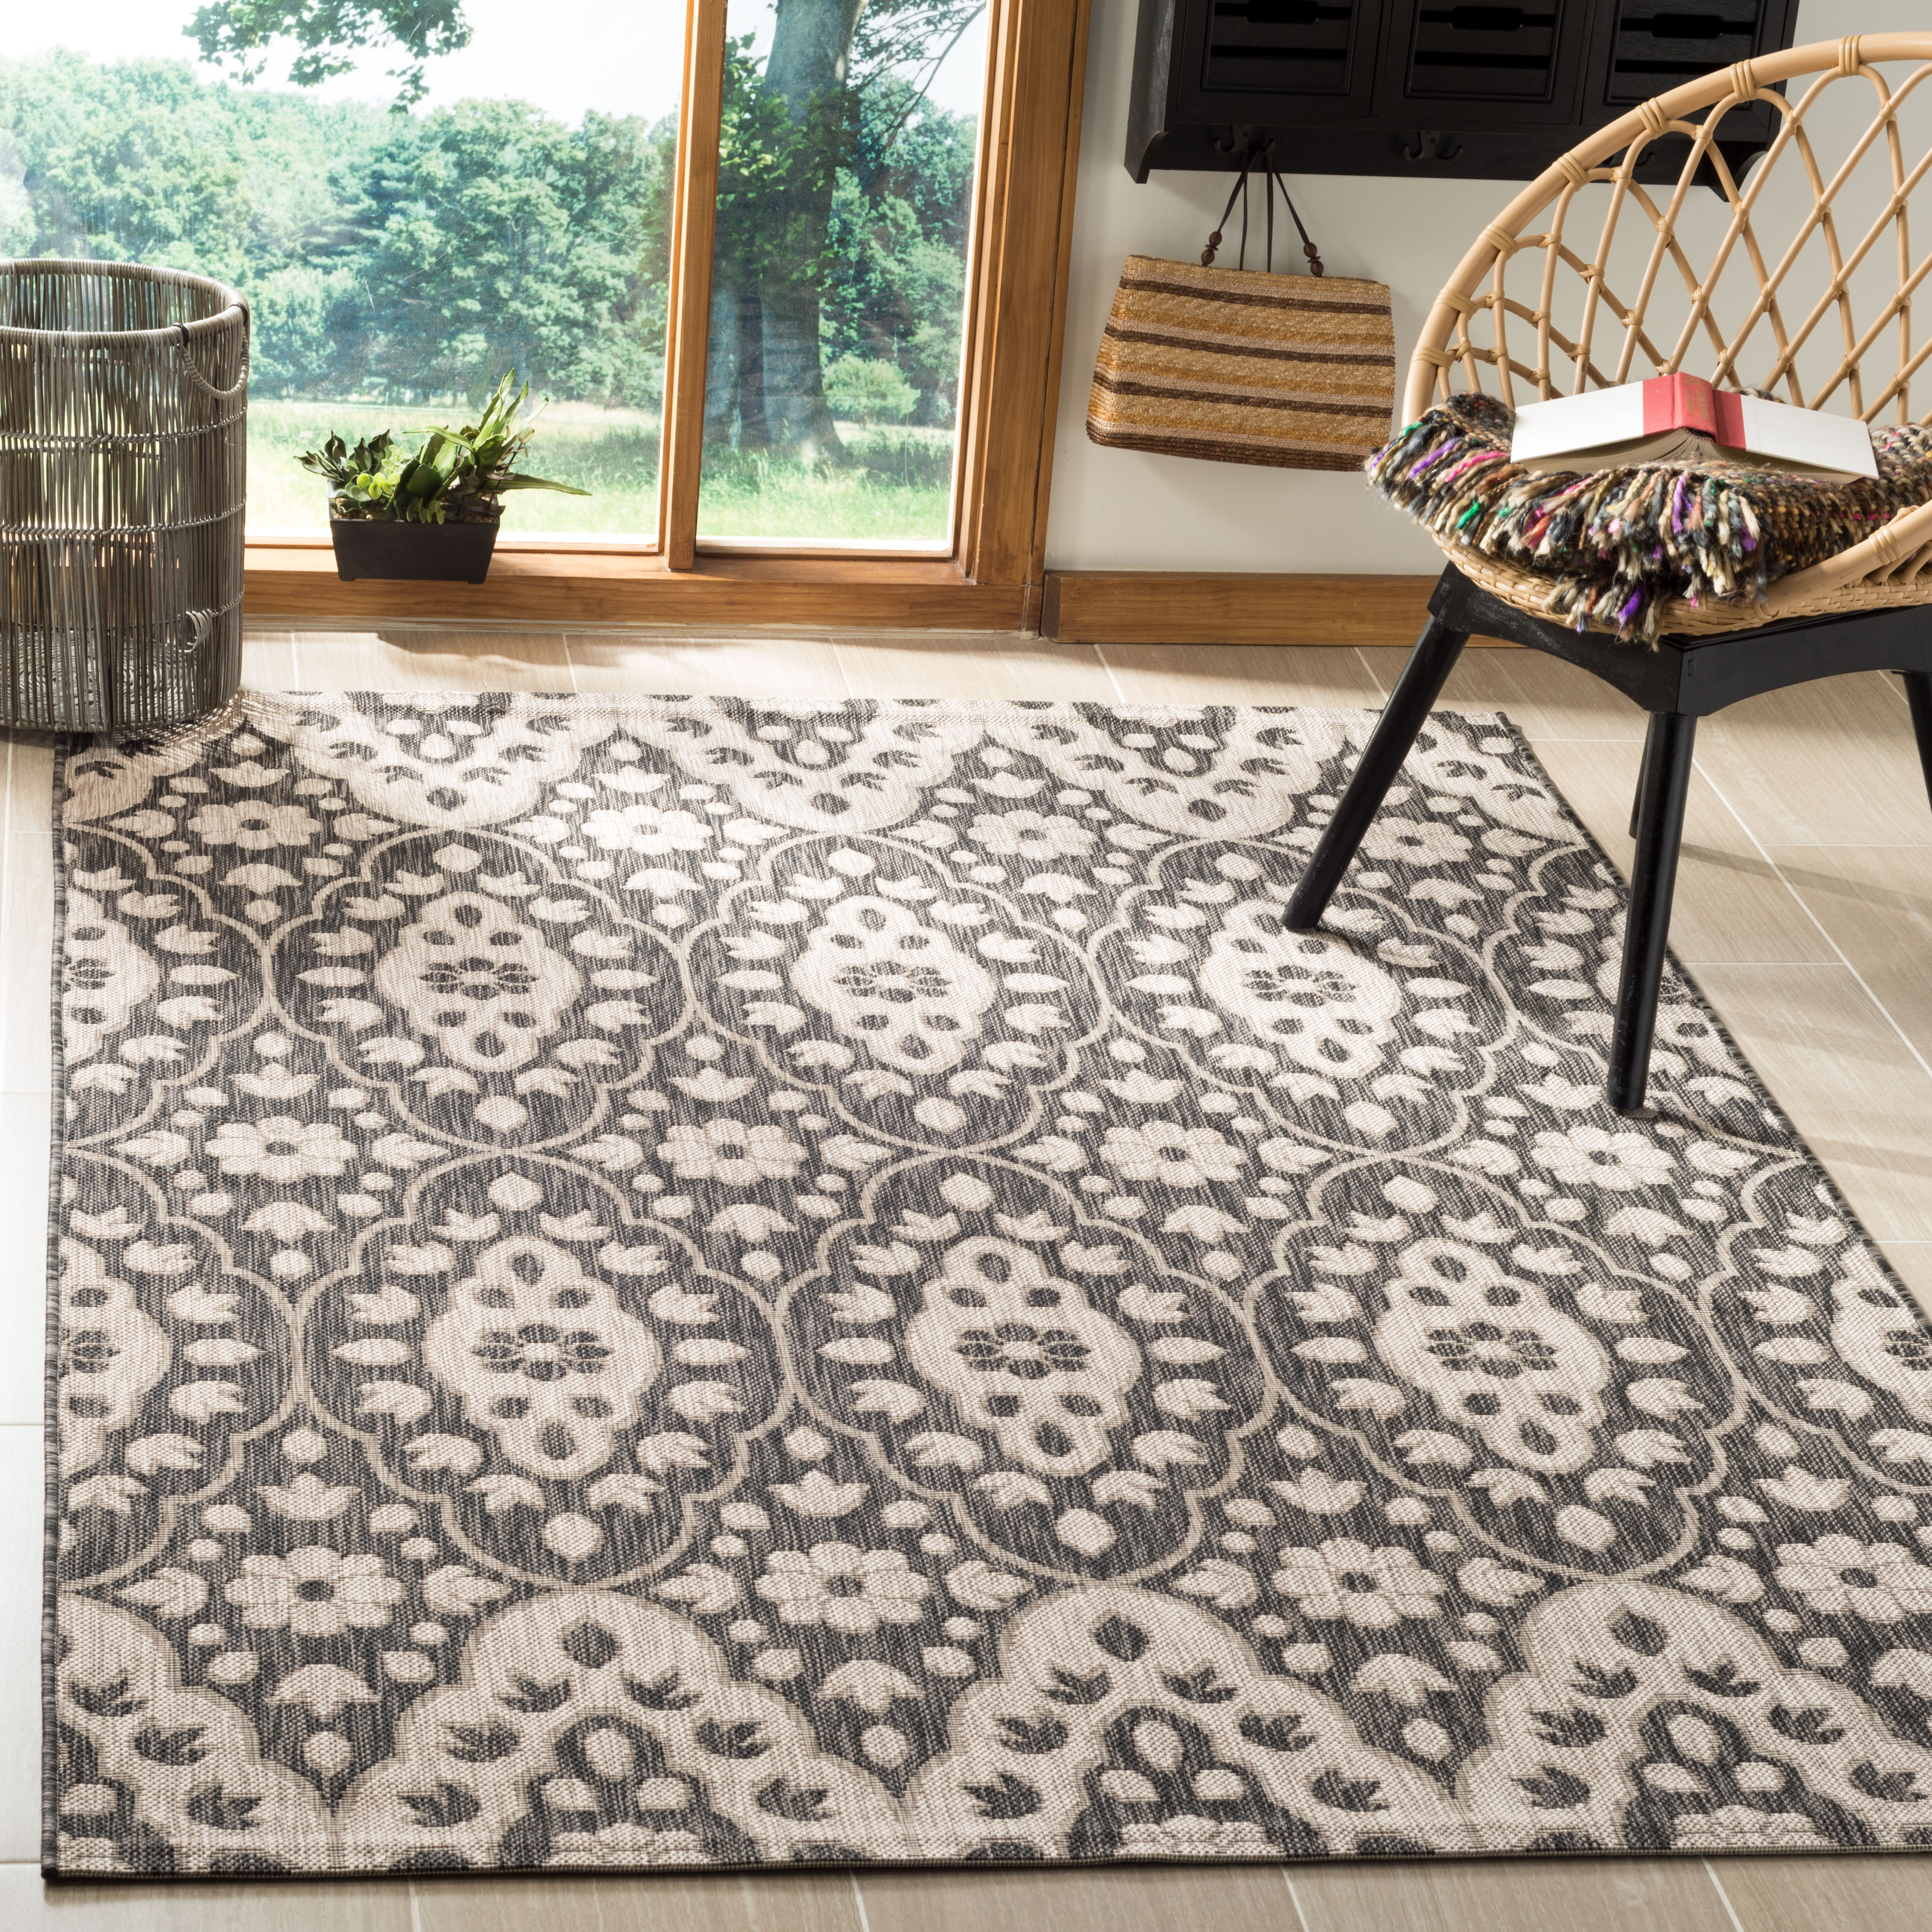 Safavieh Martha Stewart Stacy Tulip Medallion Indoor/Outdoor Area Rug